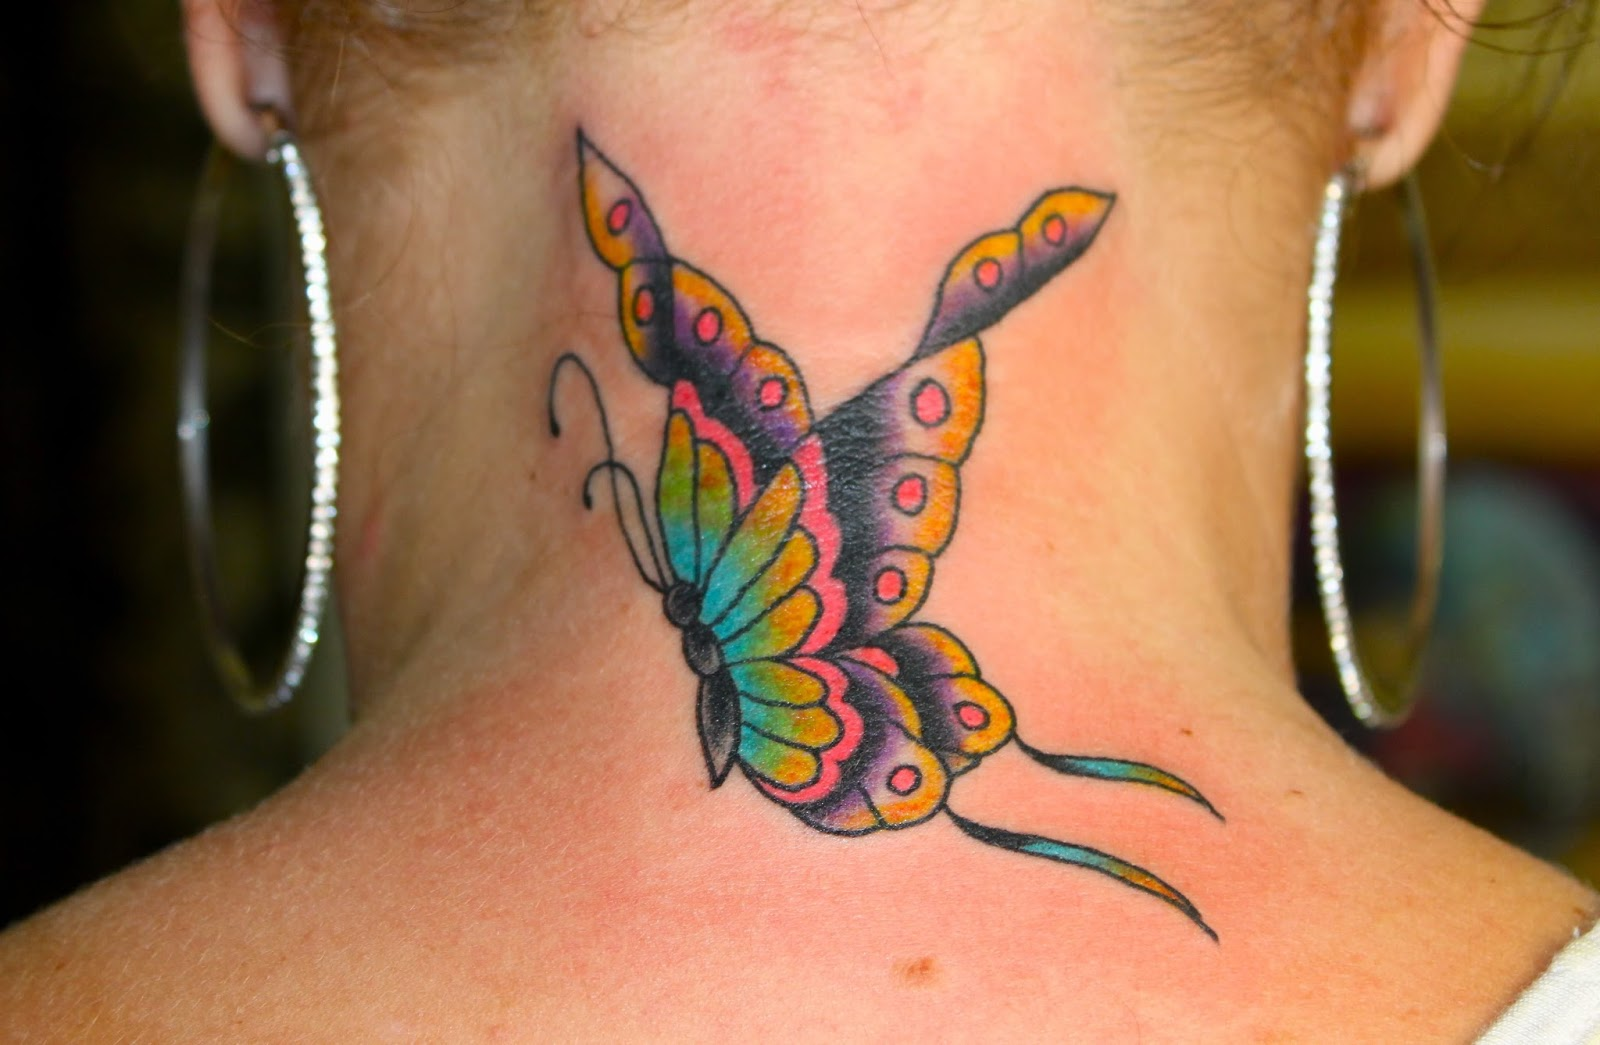 tattoos back tattoos lower back butterfly tattoo design. Black Bedroom Furniture Sets. Home Design Ideas